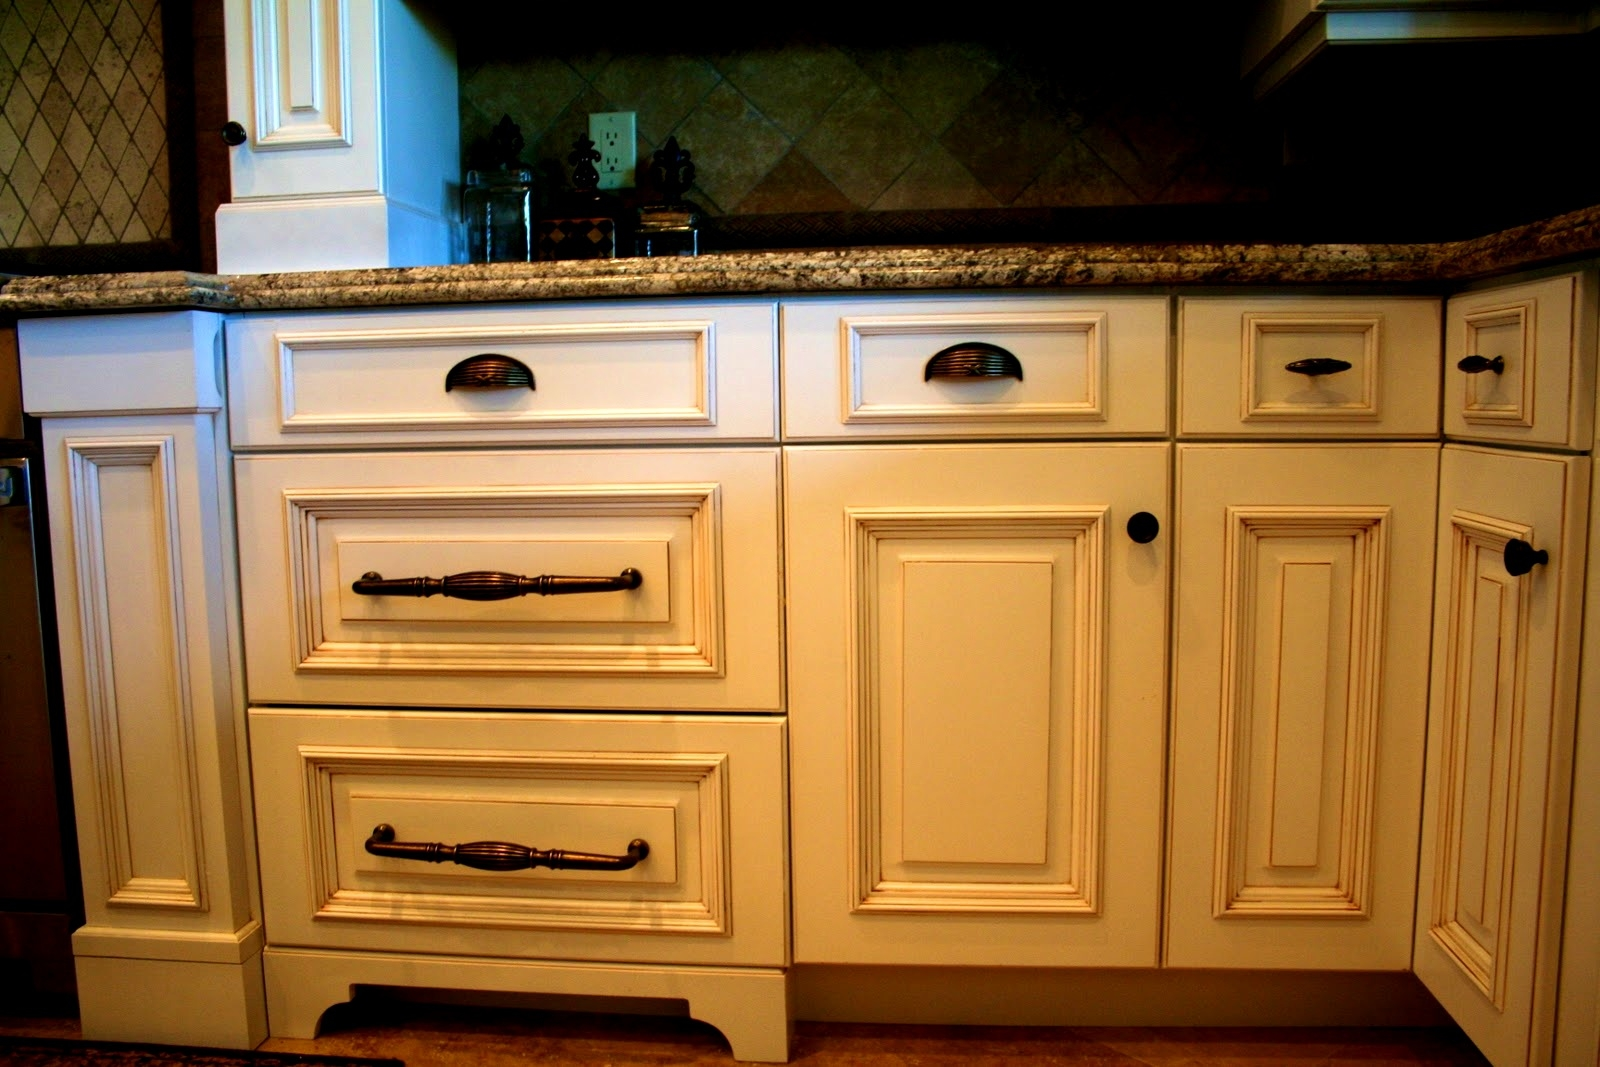 Kitchen Cabinet Hardware Pulls And Handles